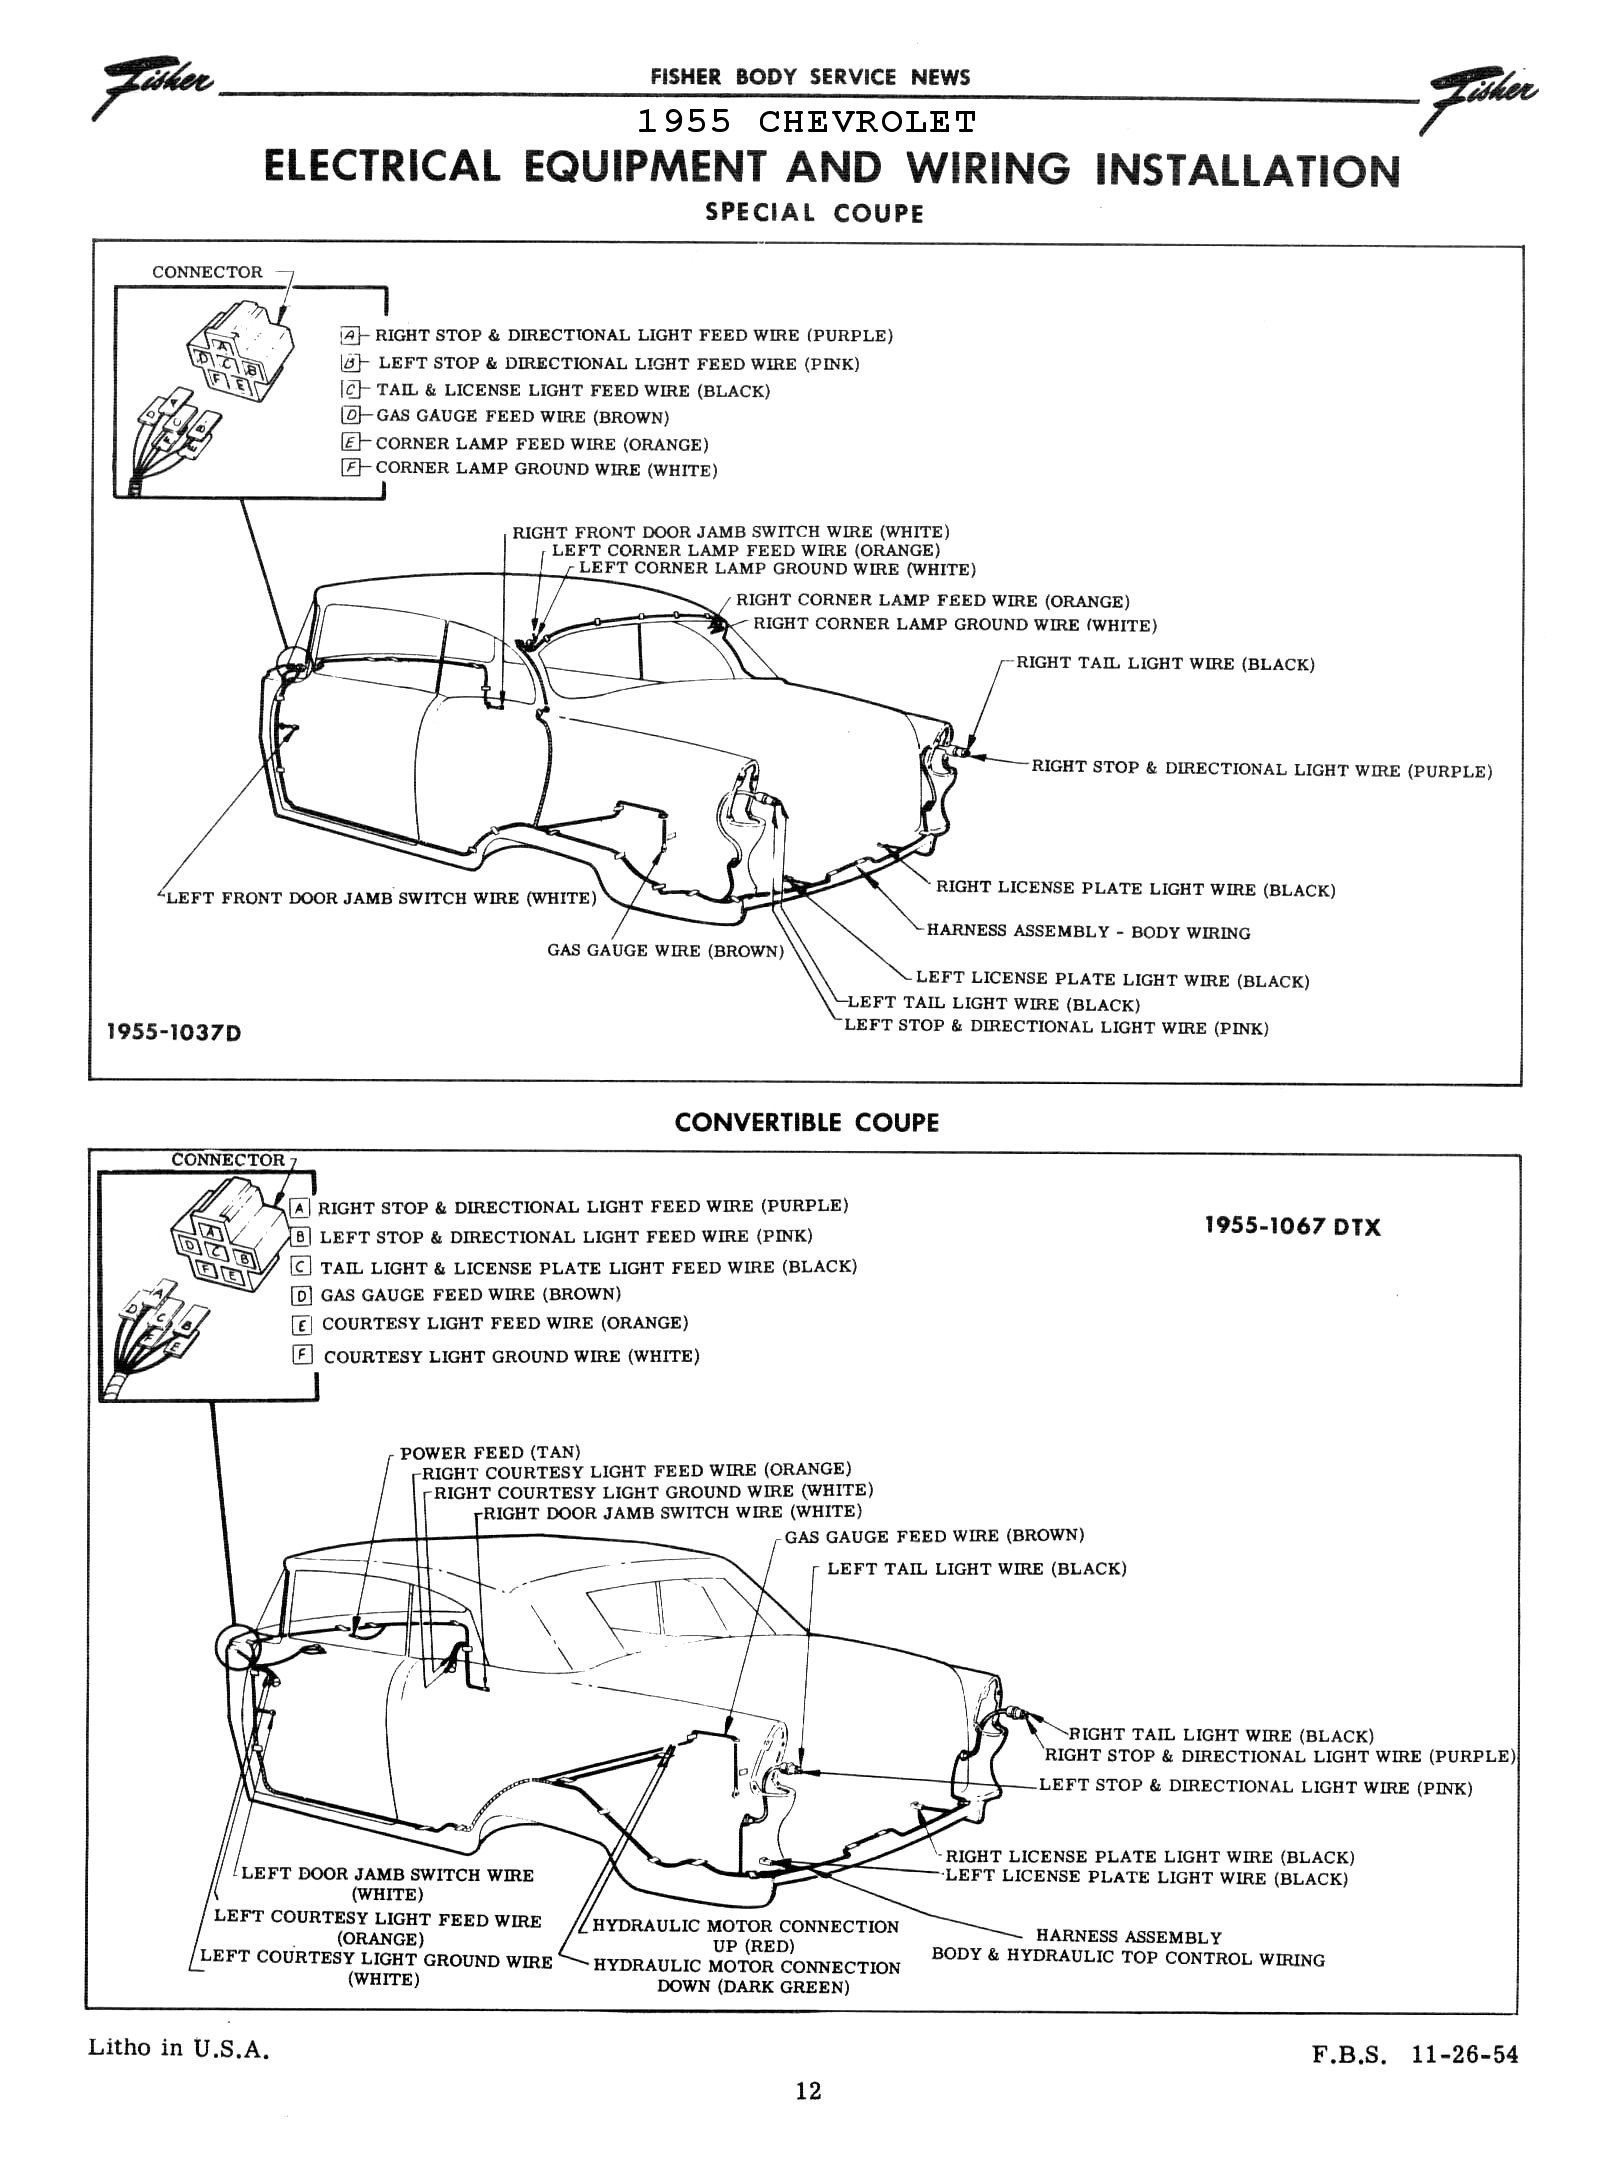 55 Chevy Dash Wiring Diagram Electrical Schematics 57 1954 Bel Air Detailed 1957 Ignition Switch